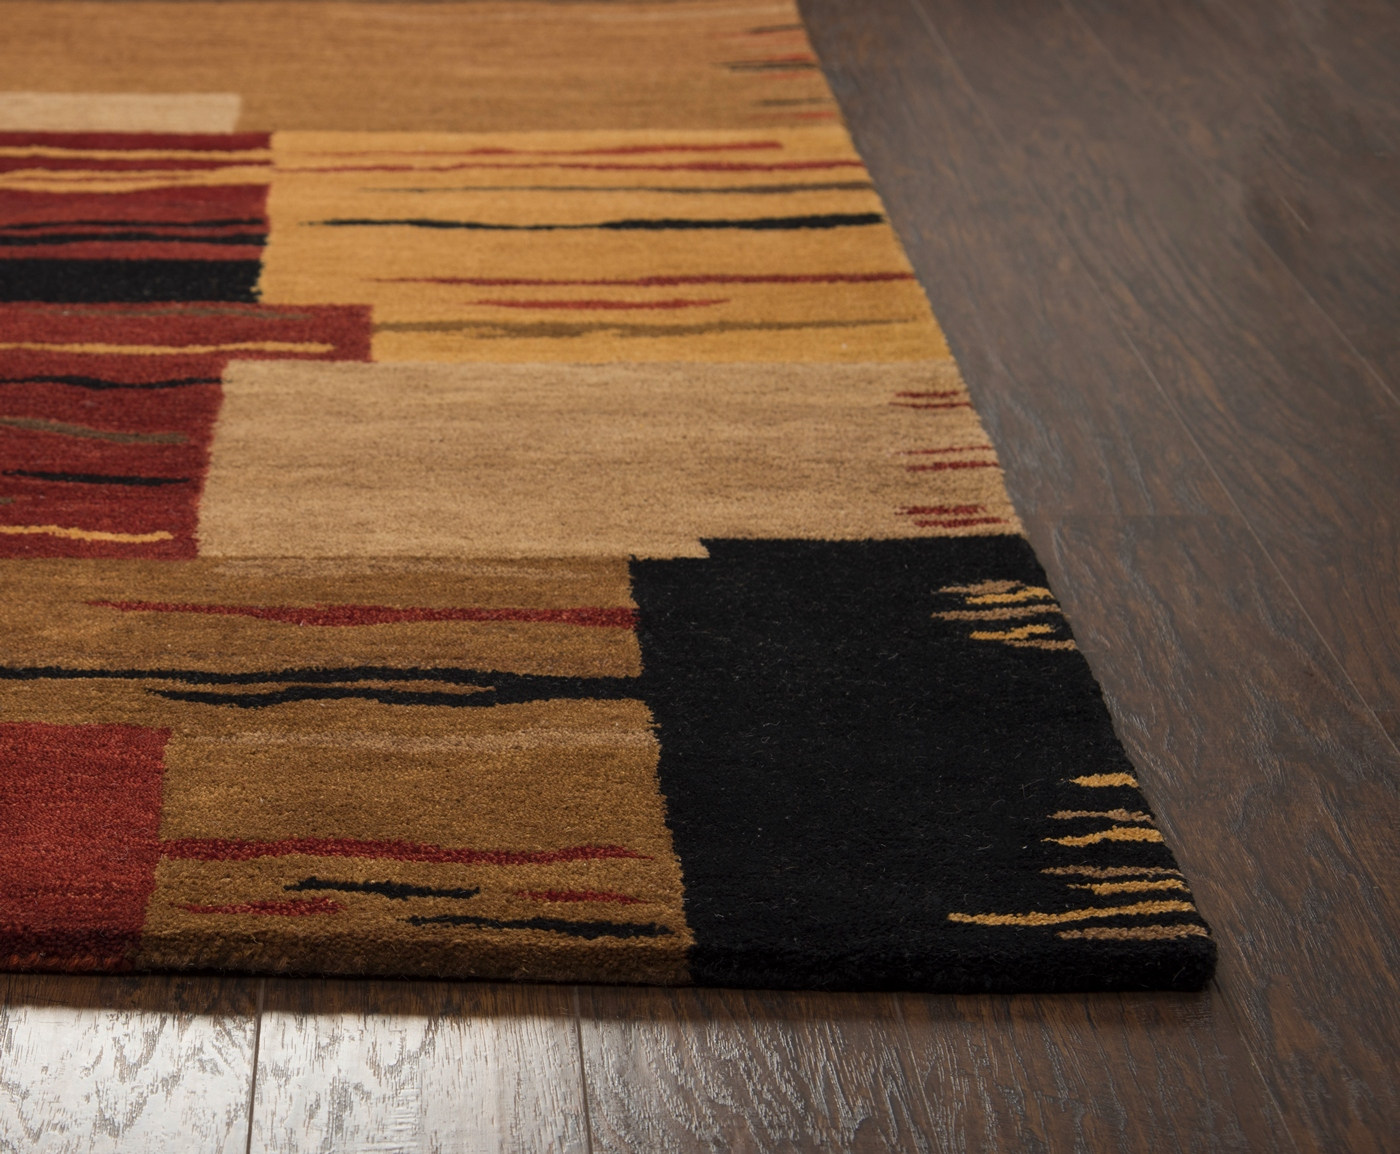 mojave abstract blocks wool area rug in red brown black. Black Bedroom Furniture Sets. Home Design Ideas